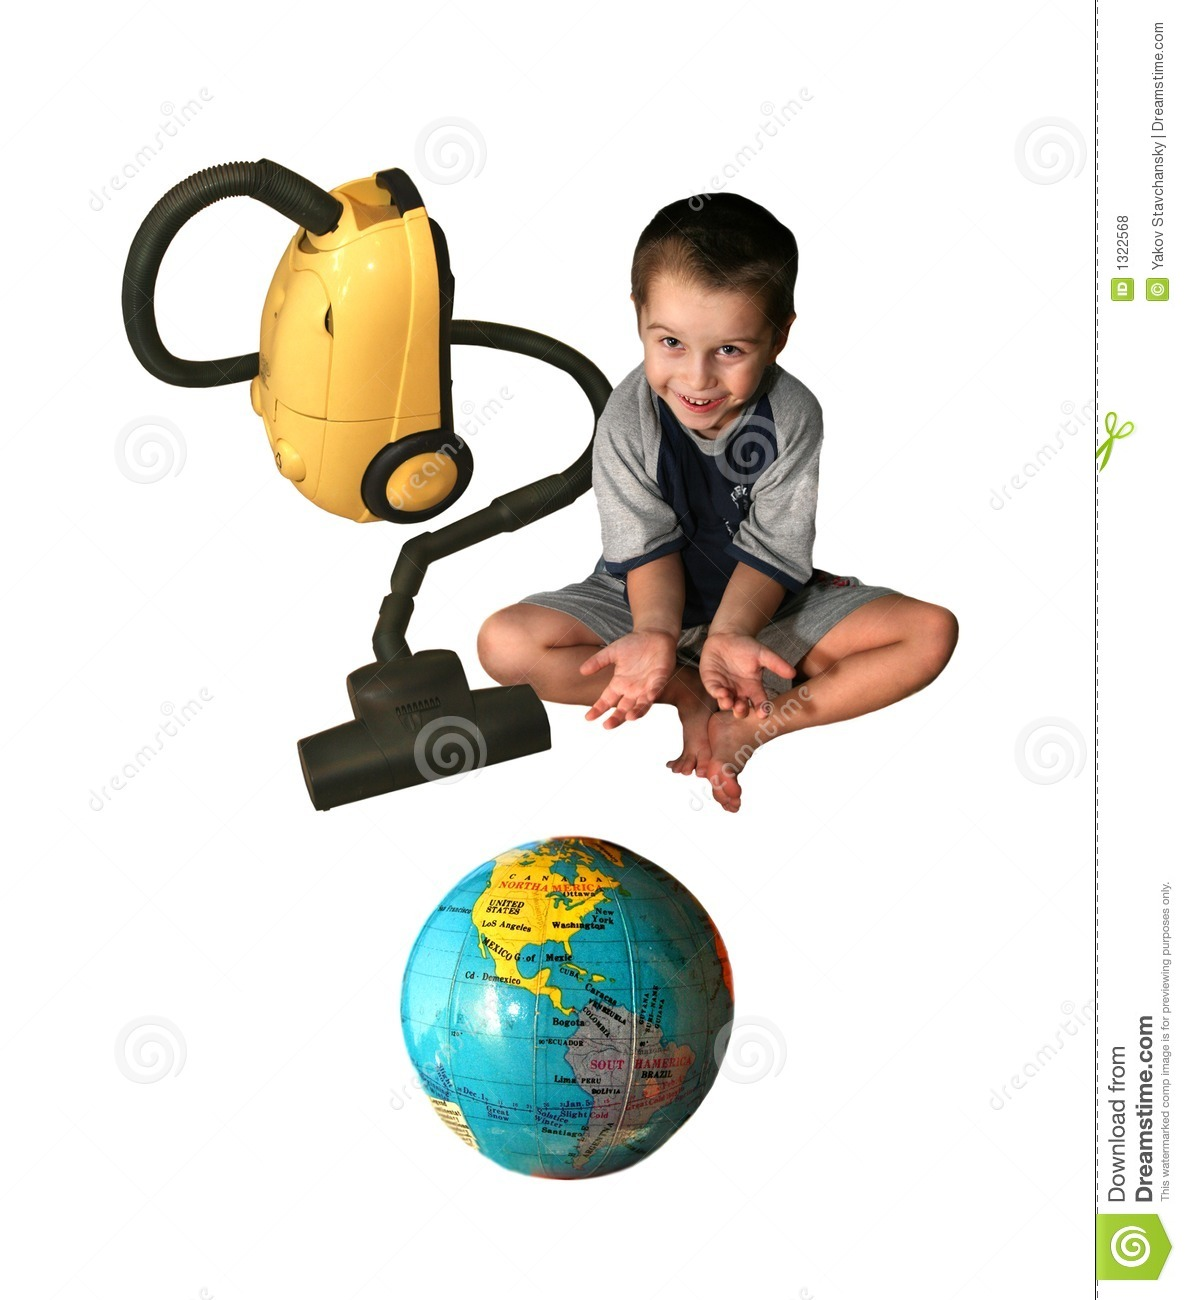 The child with a vacuum cleaner.